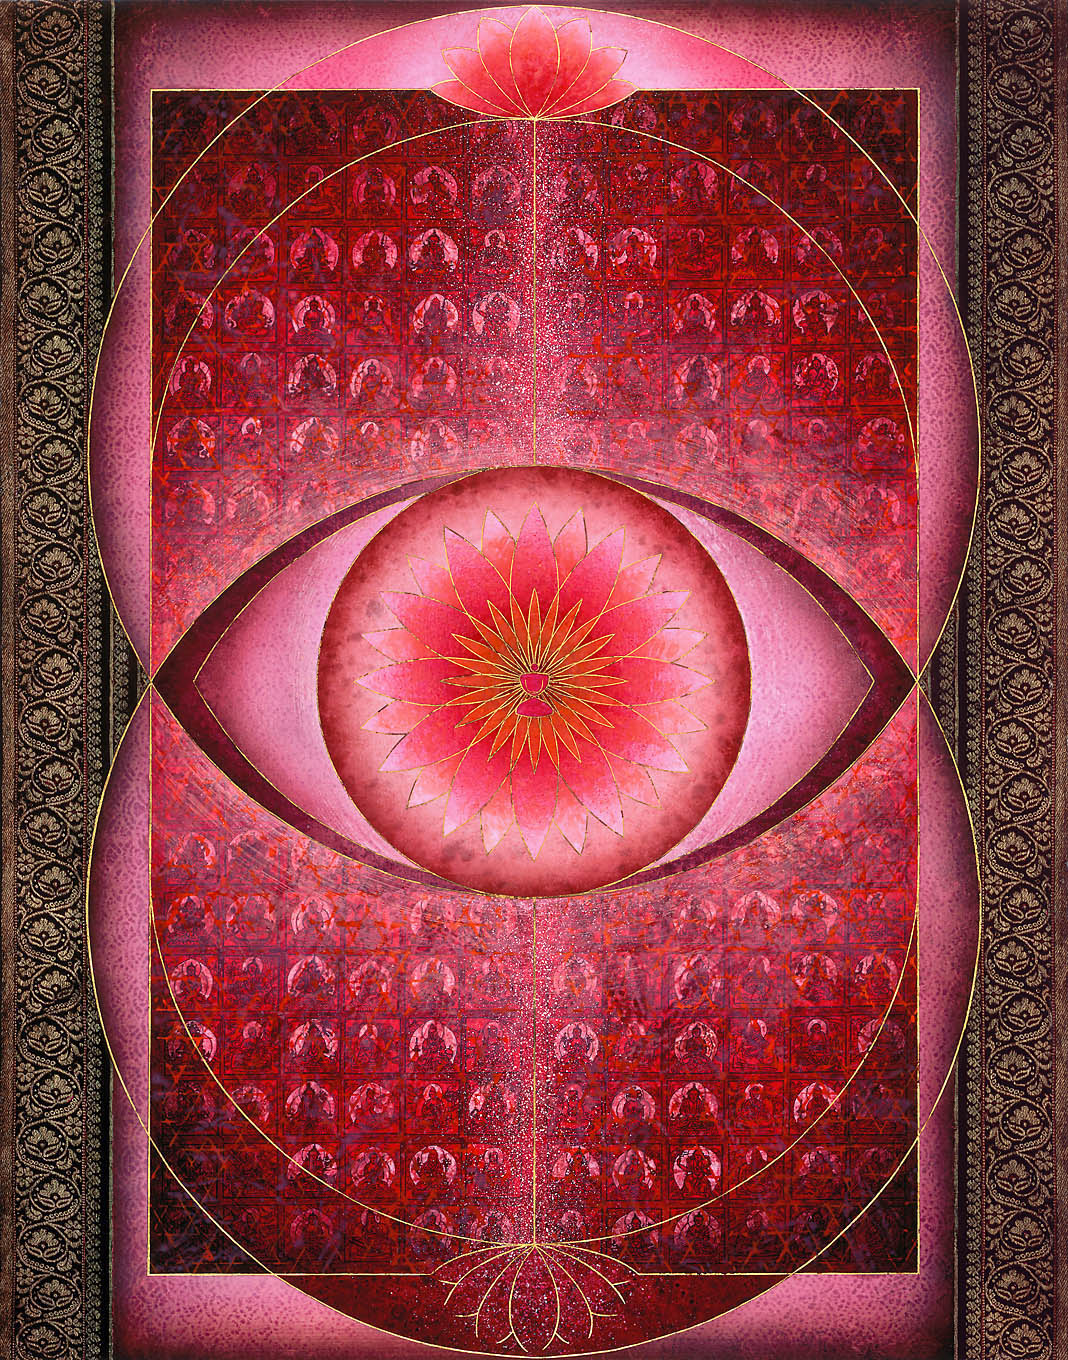 Socrates Geens, Sacred gate with the seal of inner vision